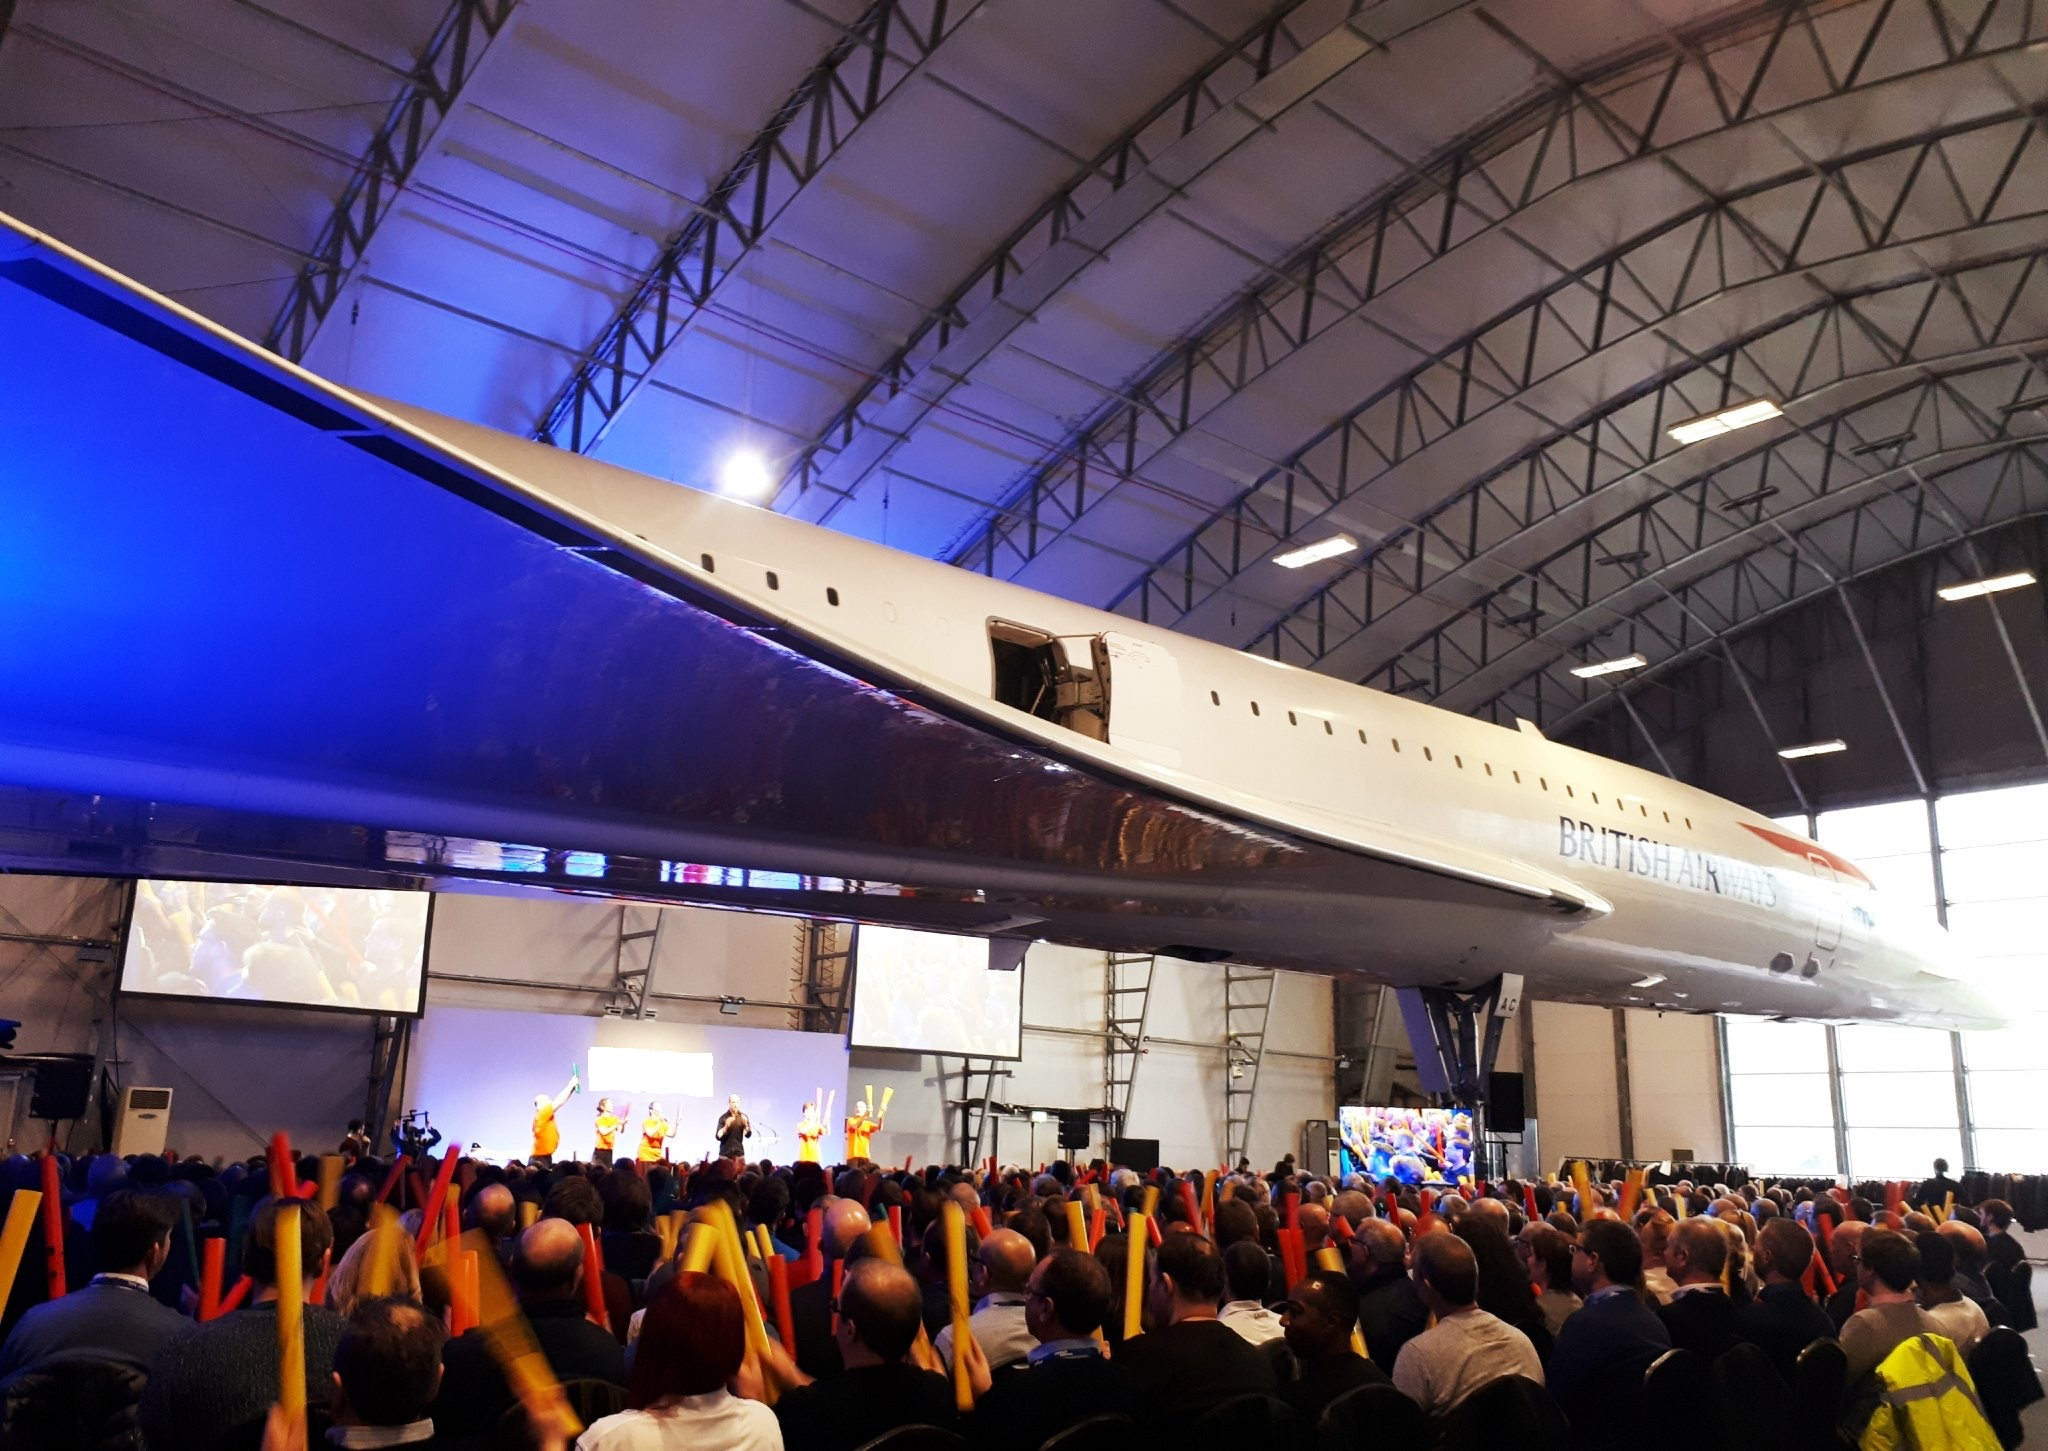 700 delegates playing boomwhackers is already exciting enough - but try adding a real Concorde jet into the mix as well!